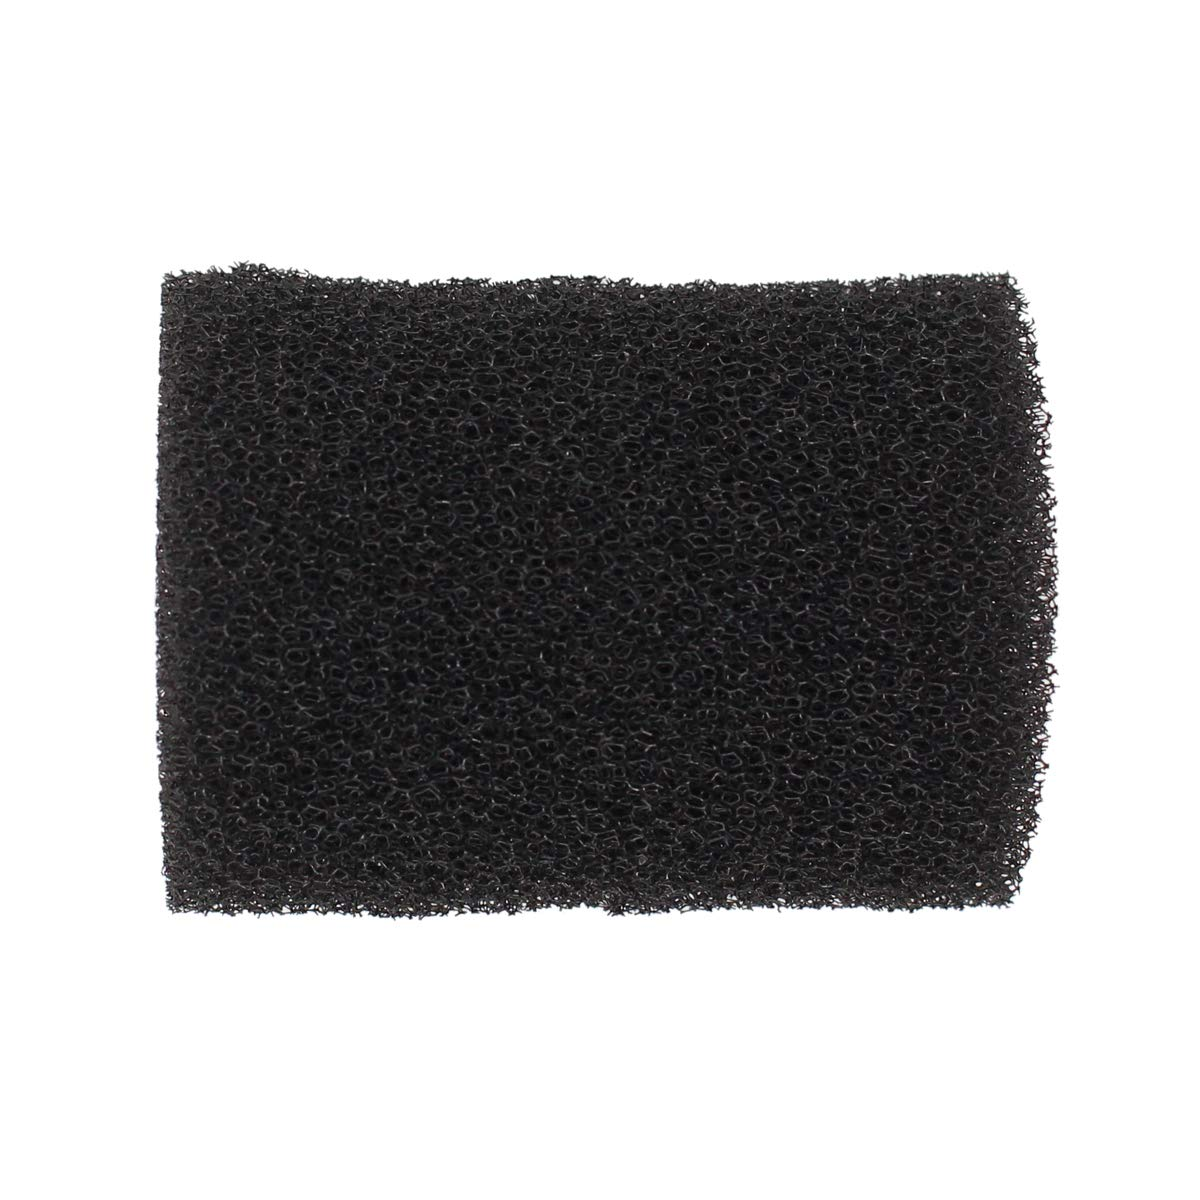 280 ApplianPar 5 Pack Sweep Hose Scrubber Tail for Polaris 180 360 3900 Sport Vac-Sweep Pool Cleaner Sweep Hose Scrubber 9-100-3105 380 480